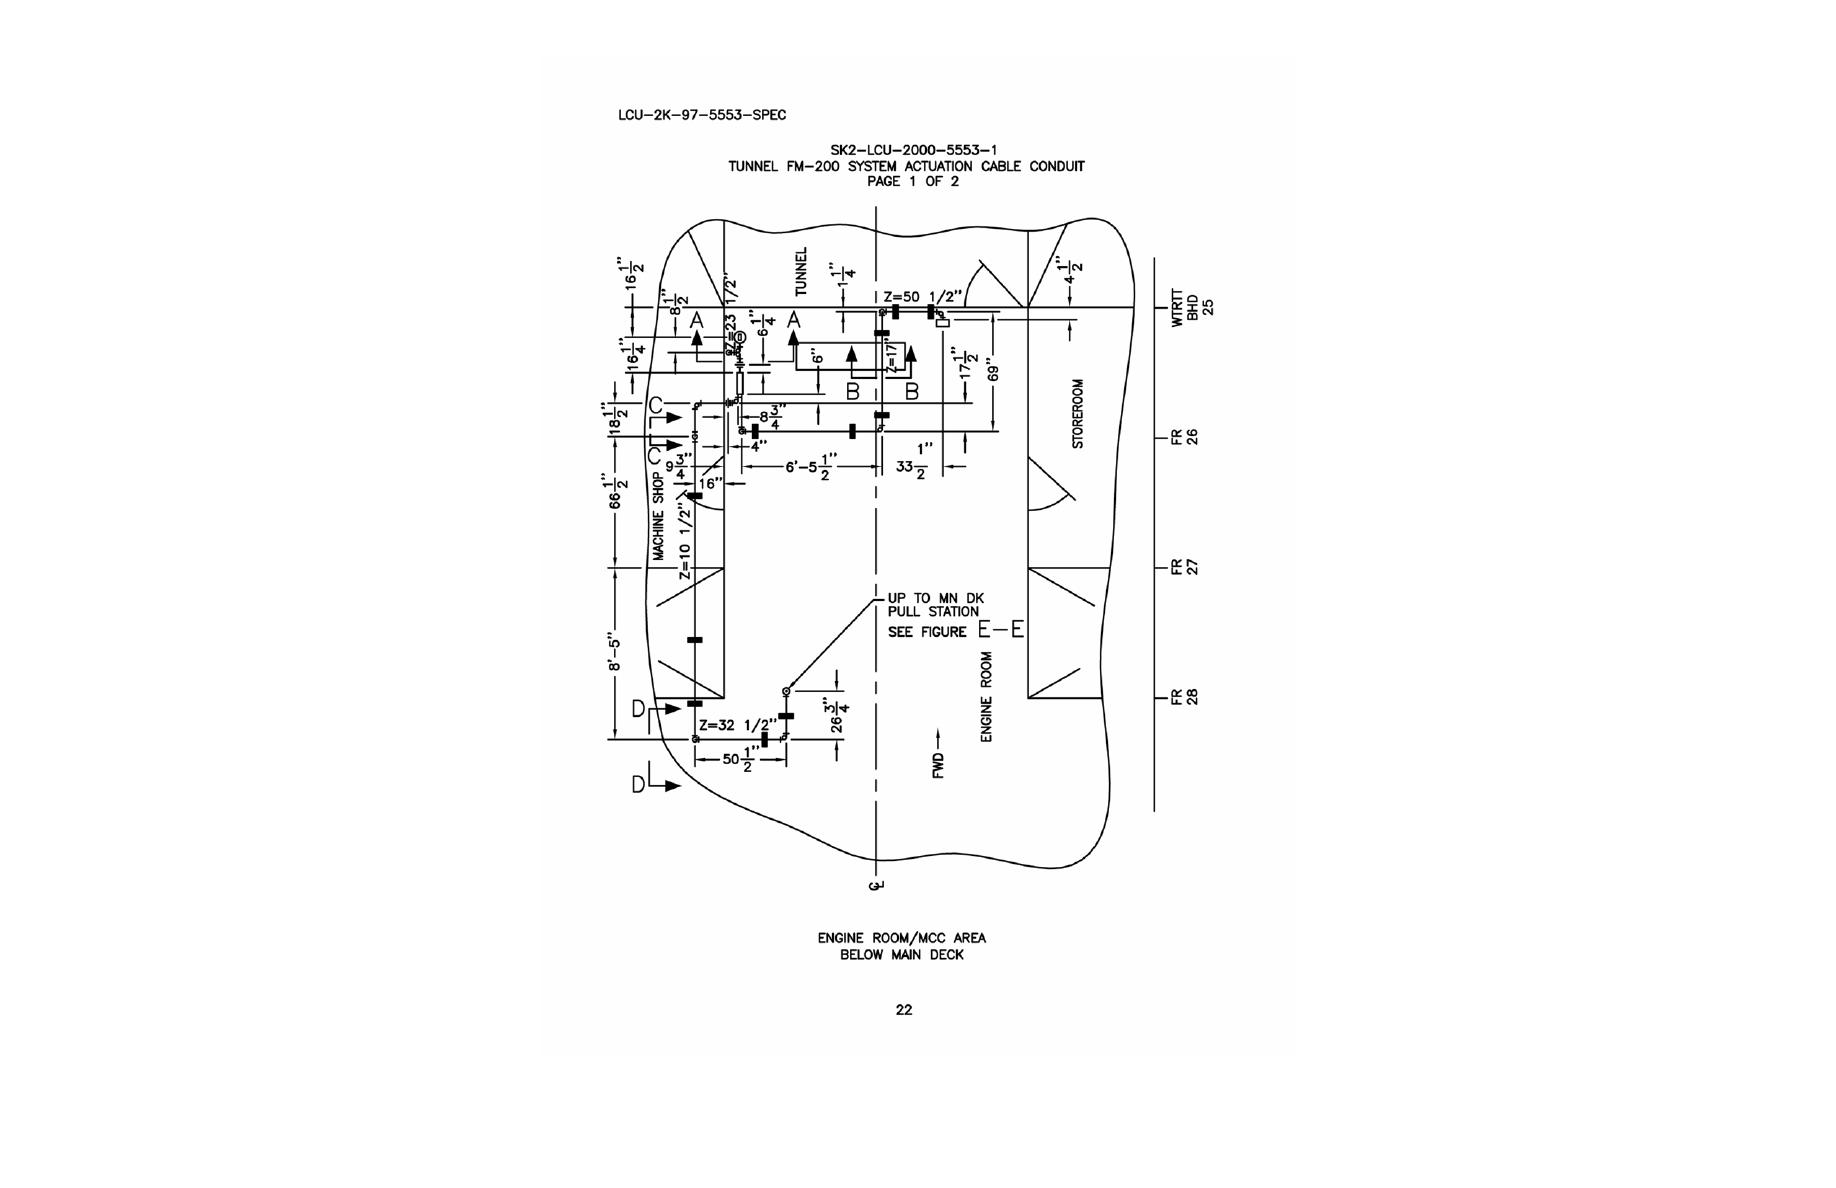 Tunnel FM-200 System Actuation Cable Conduit Page 1 of 2